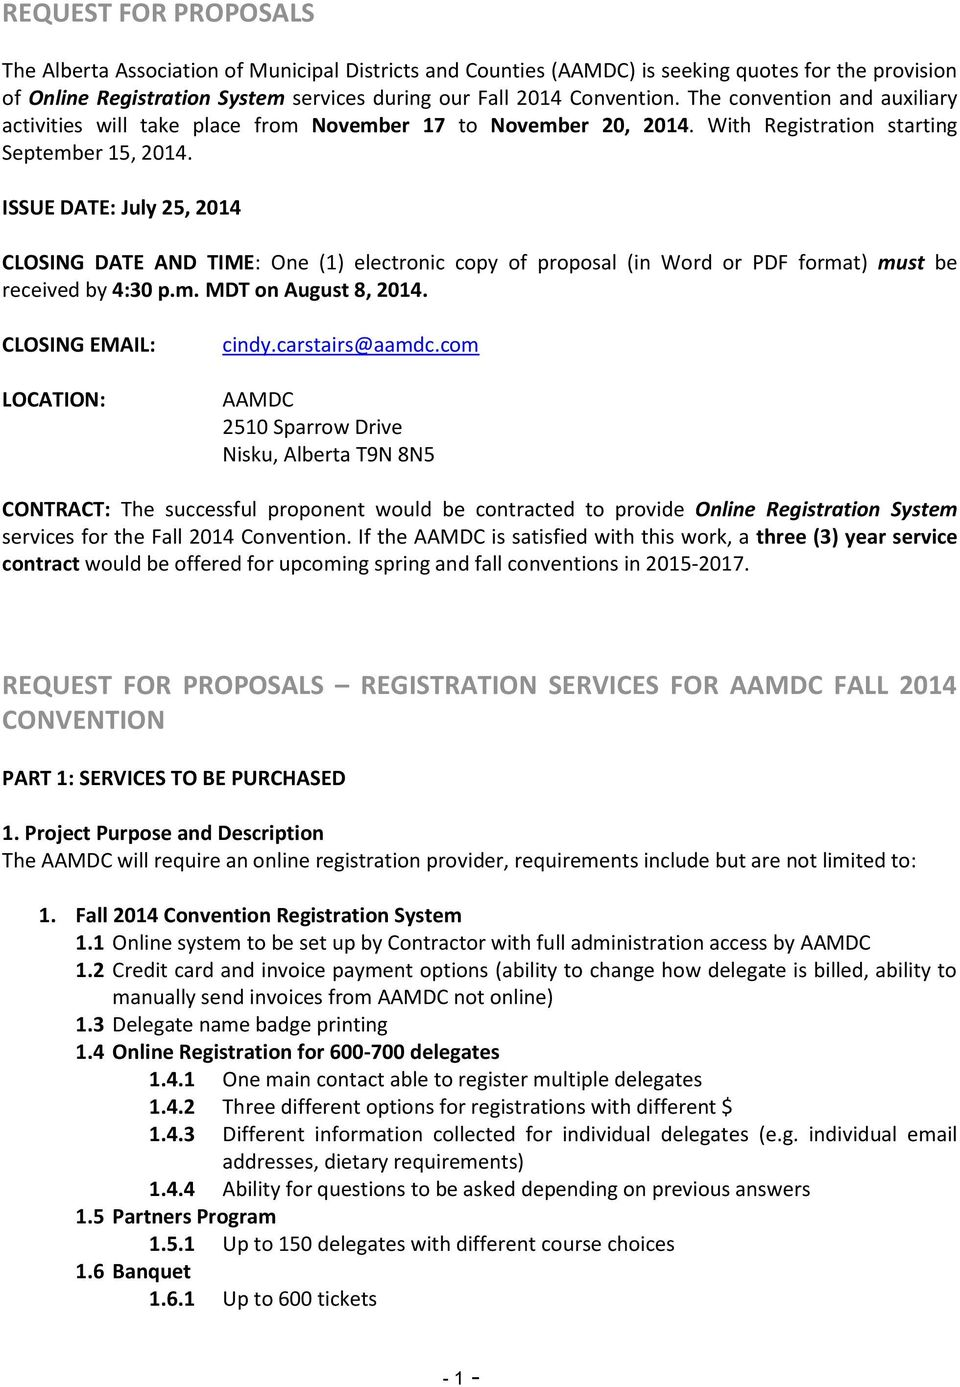 ISSUE DATE: July 25, 2014 CLOSING DATE AND TIME: One (1) electronic copy of proposal (in Word or PDF format) must be received by 4:30 p.m. MDT on August 8, 2014. CLOSING EMAIL: LOCATION: cindy.